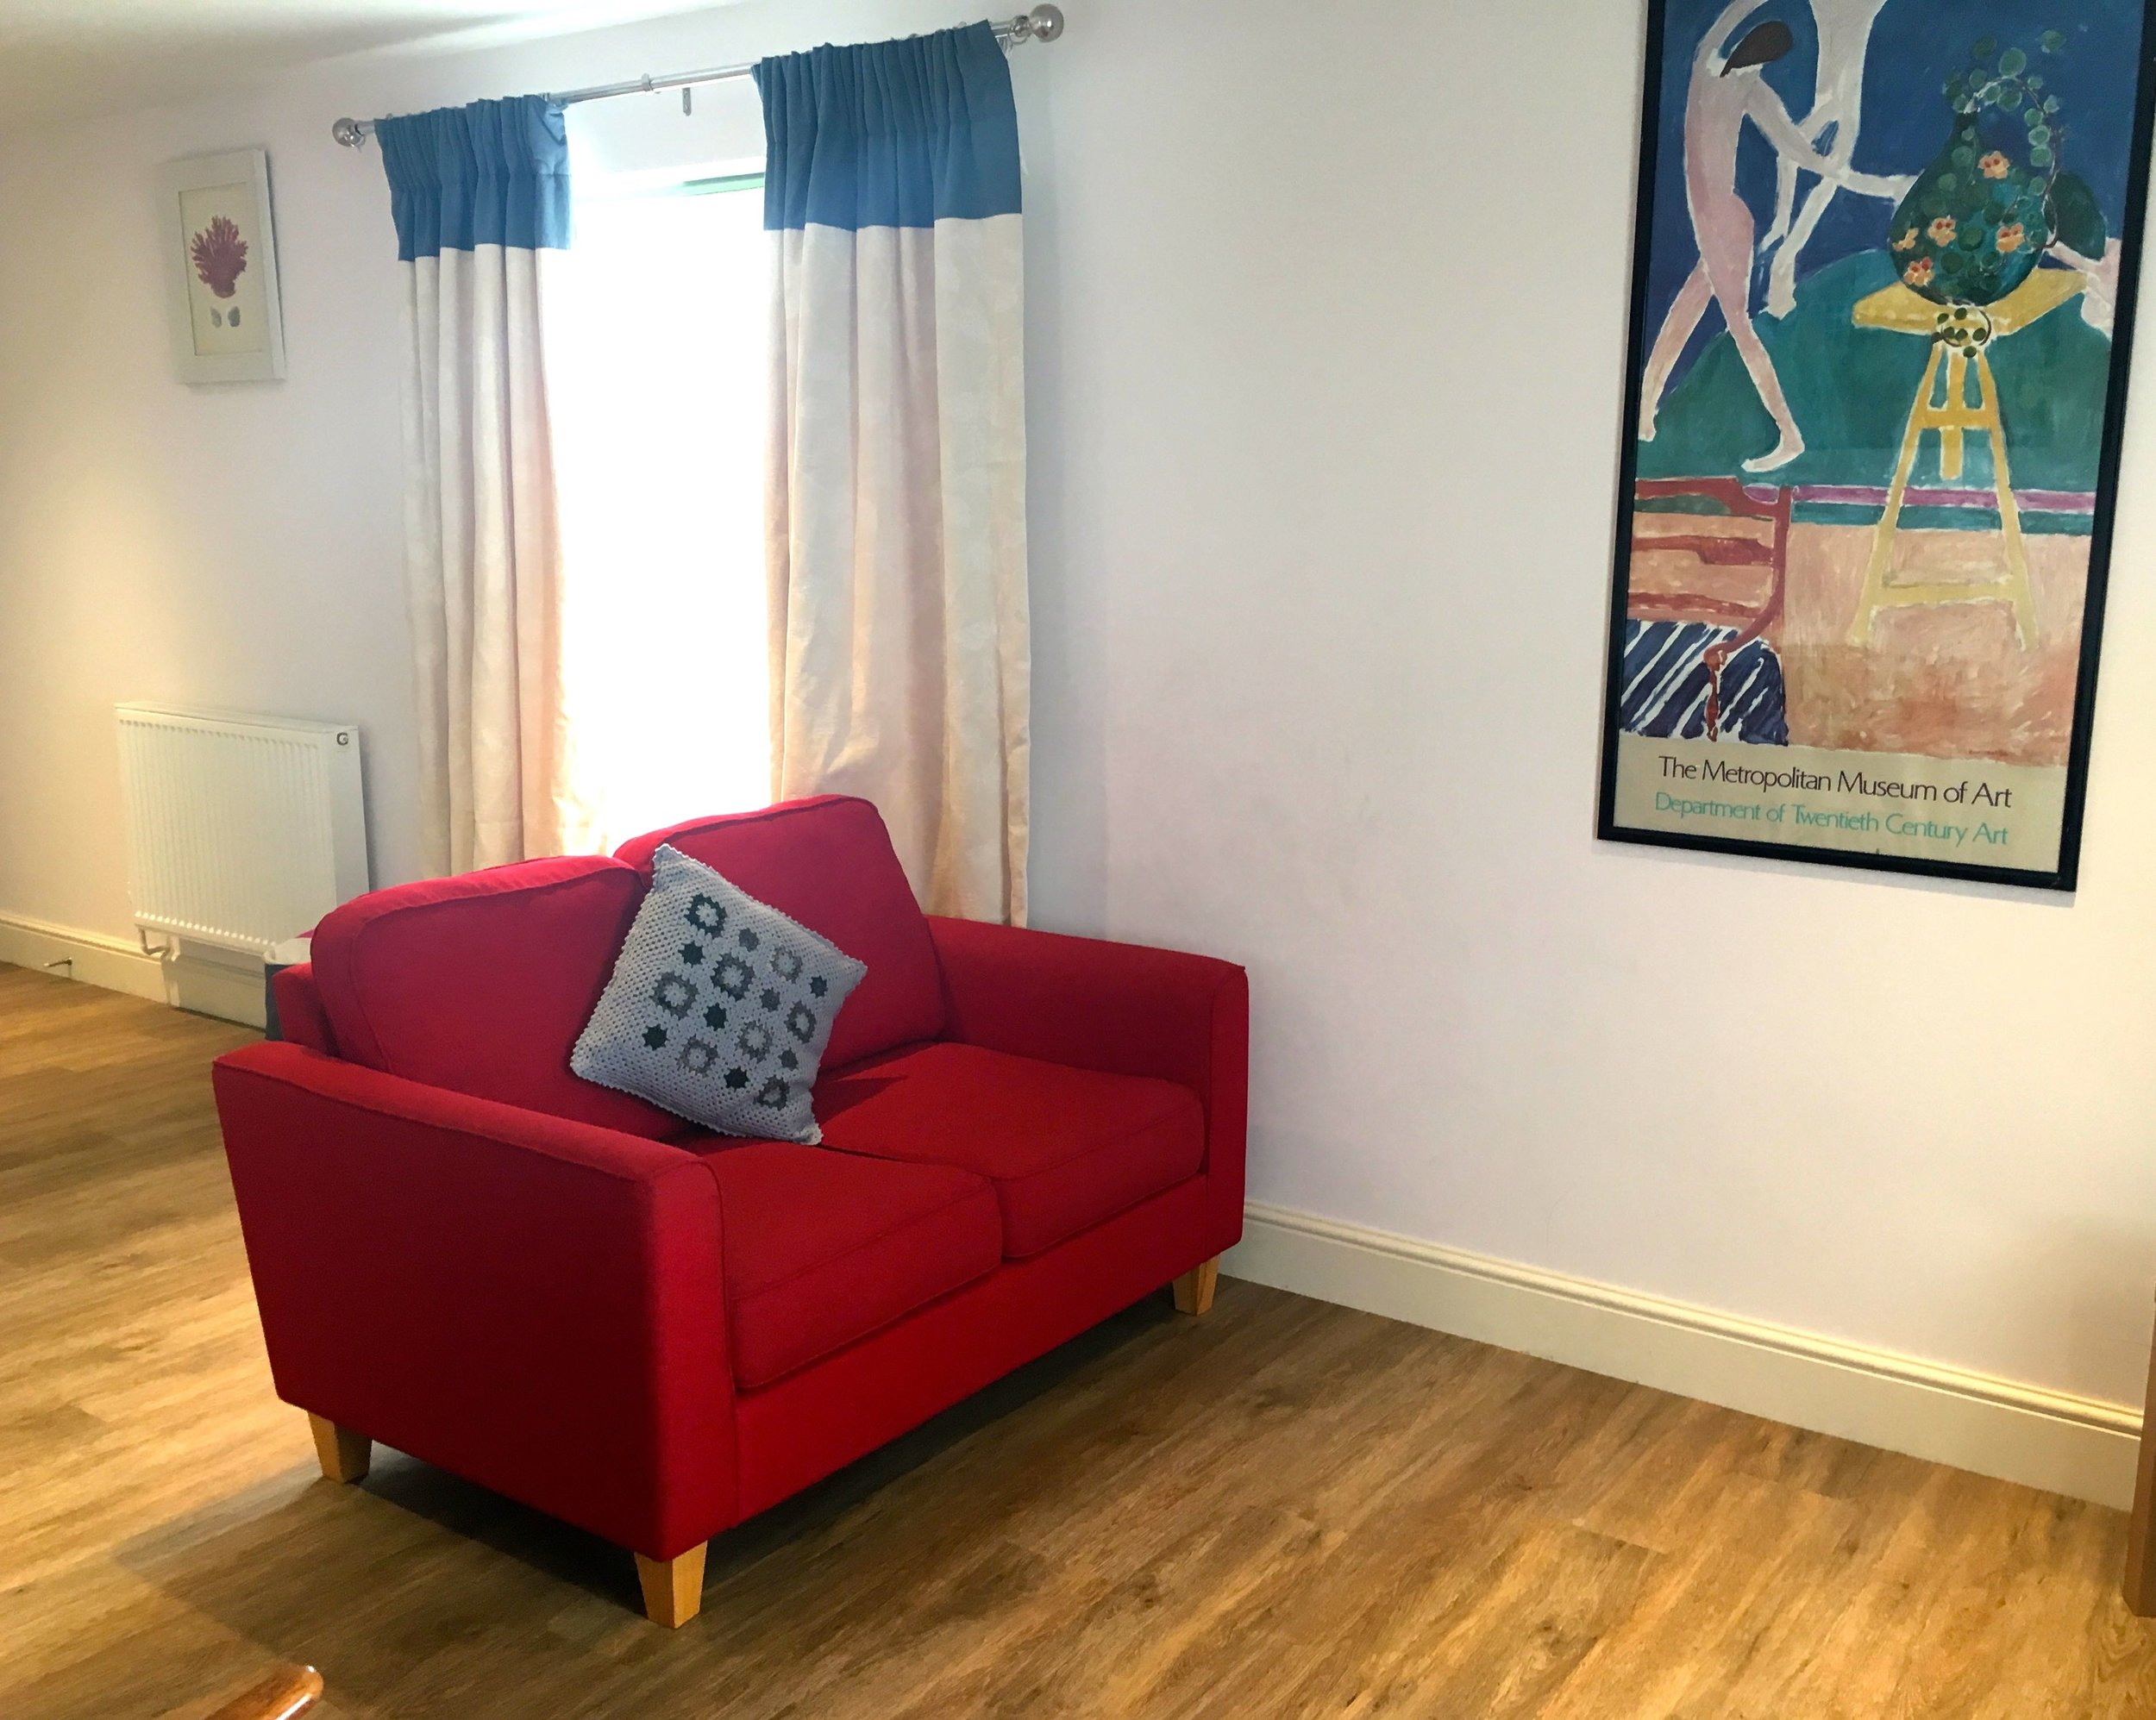 A kitchenette, two seater sofa and somewhere to sit